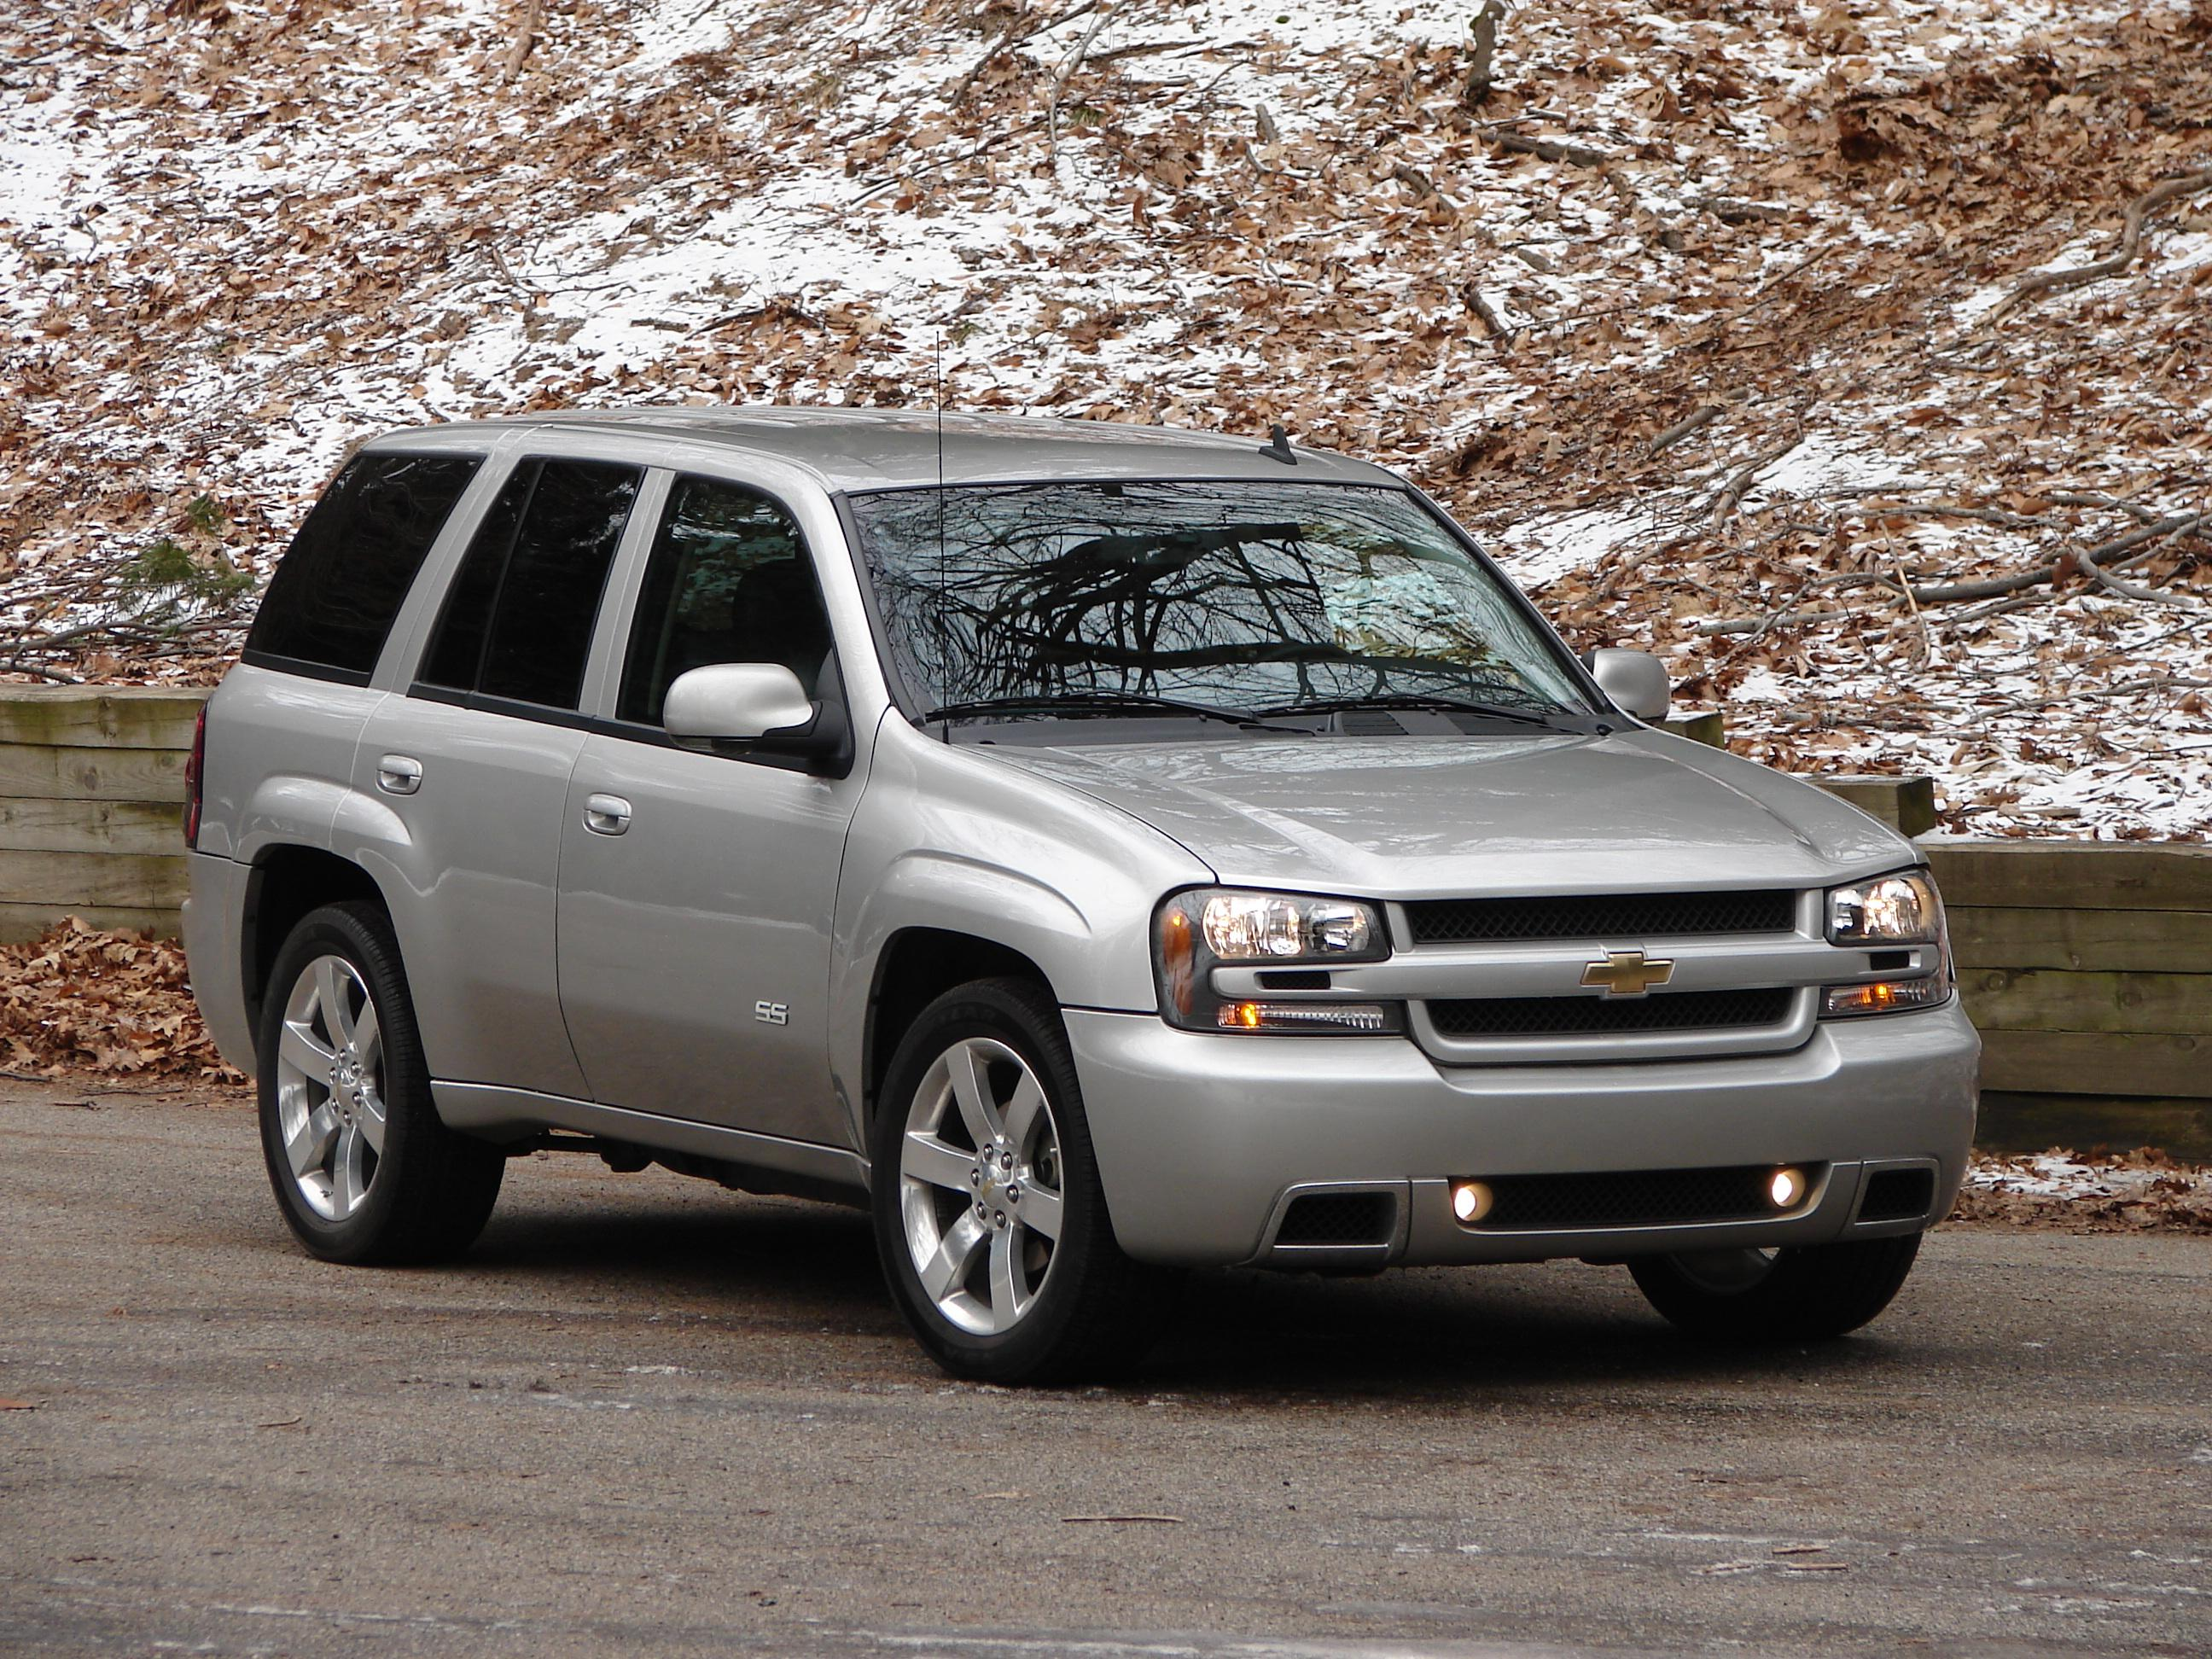 2007 Chevrolet Trailblazer #4